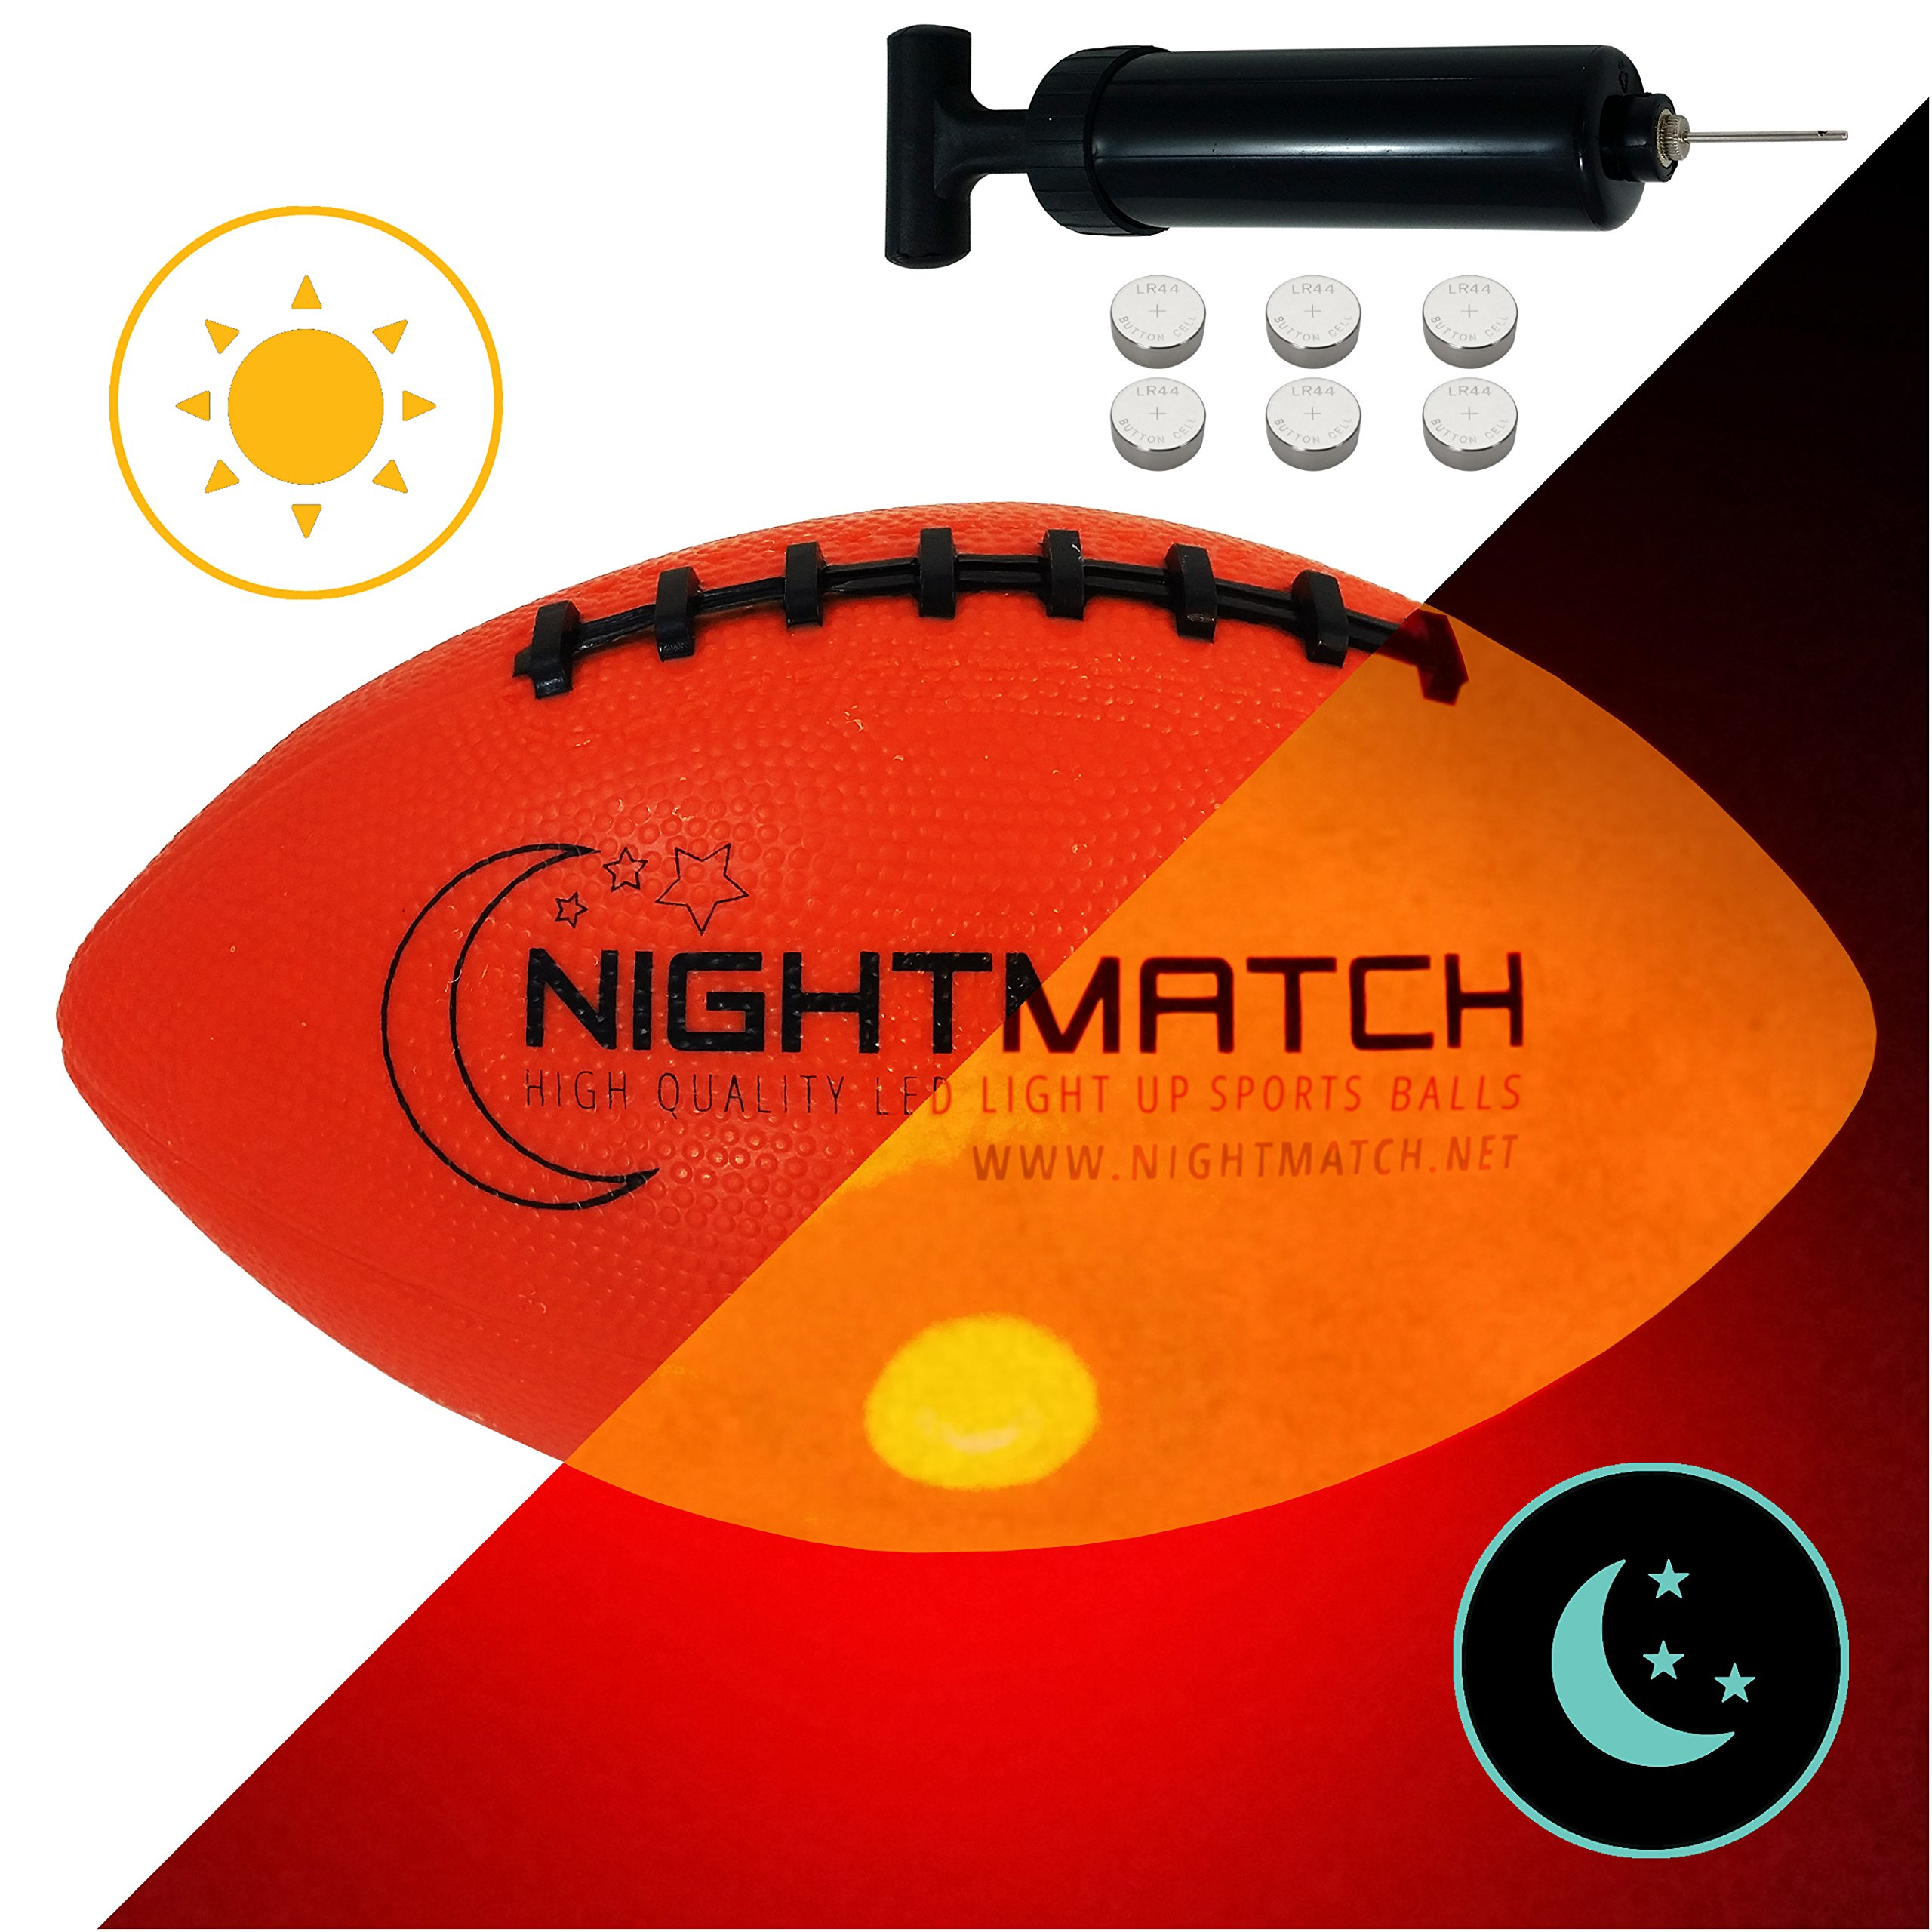 NightMatch Light Up Football INCL BALL PUMP and SPARE BATTERIES - Inside LED lights up when kicked - Glow in the Dark Football - Size 6 - Official Size & Weight - Top Quality - Night-Light Ball Sports